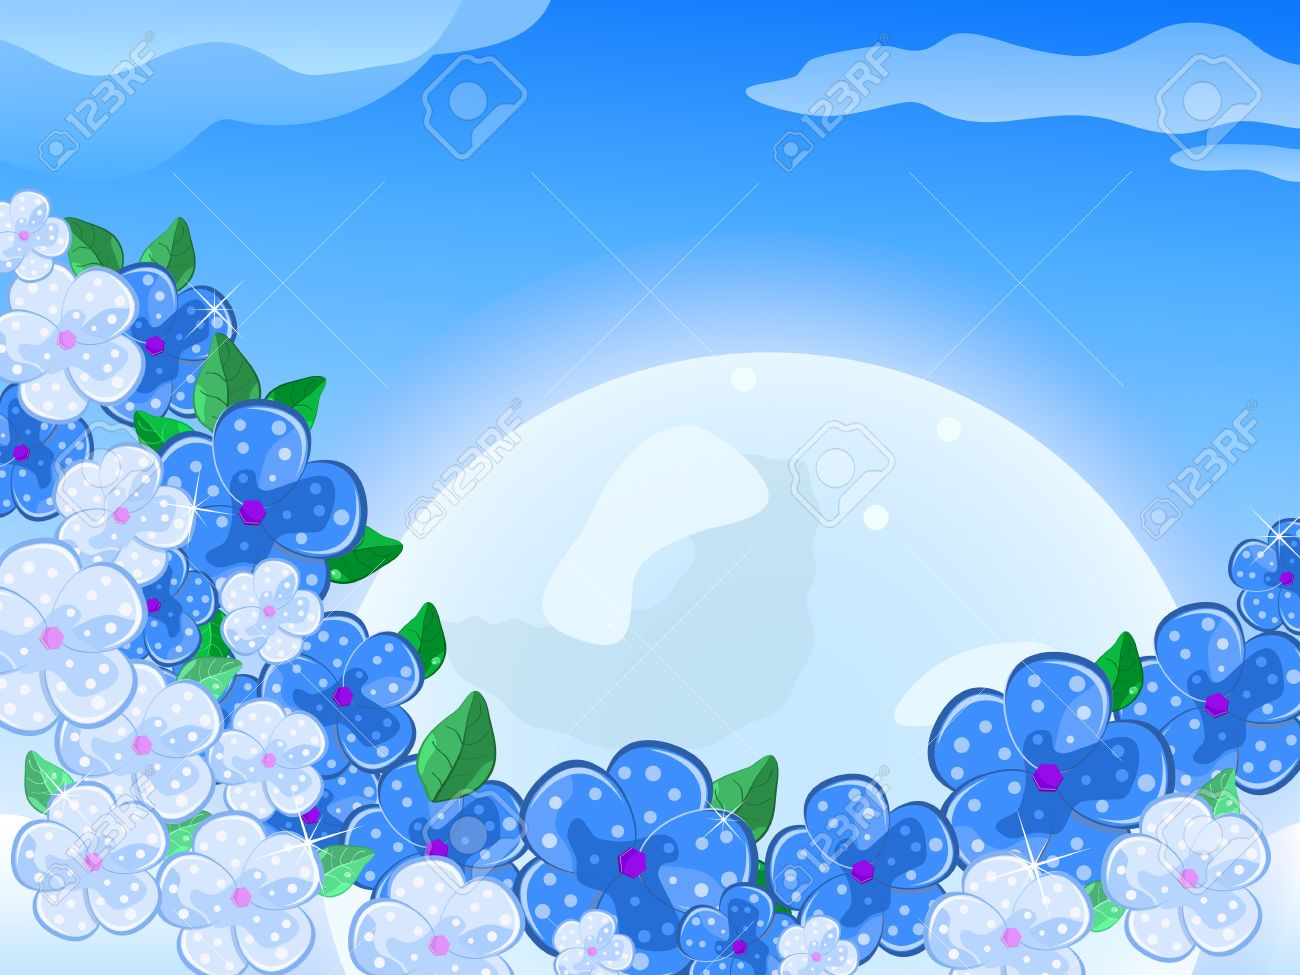 Blue and White Flowers In front of thee Moon In the Sky With Sunshine. Vector Illustration Stock Vector - 20069441